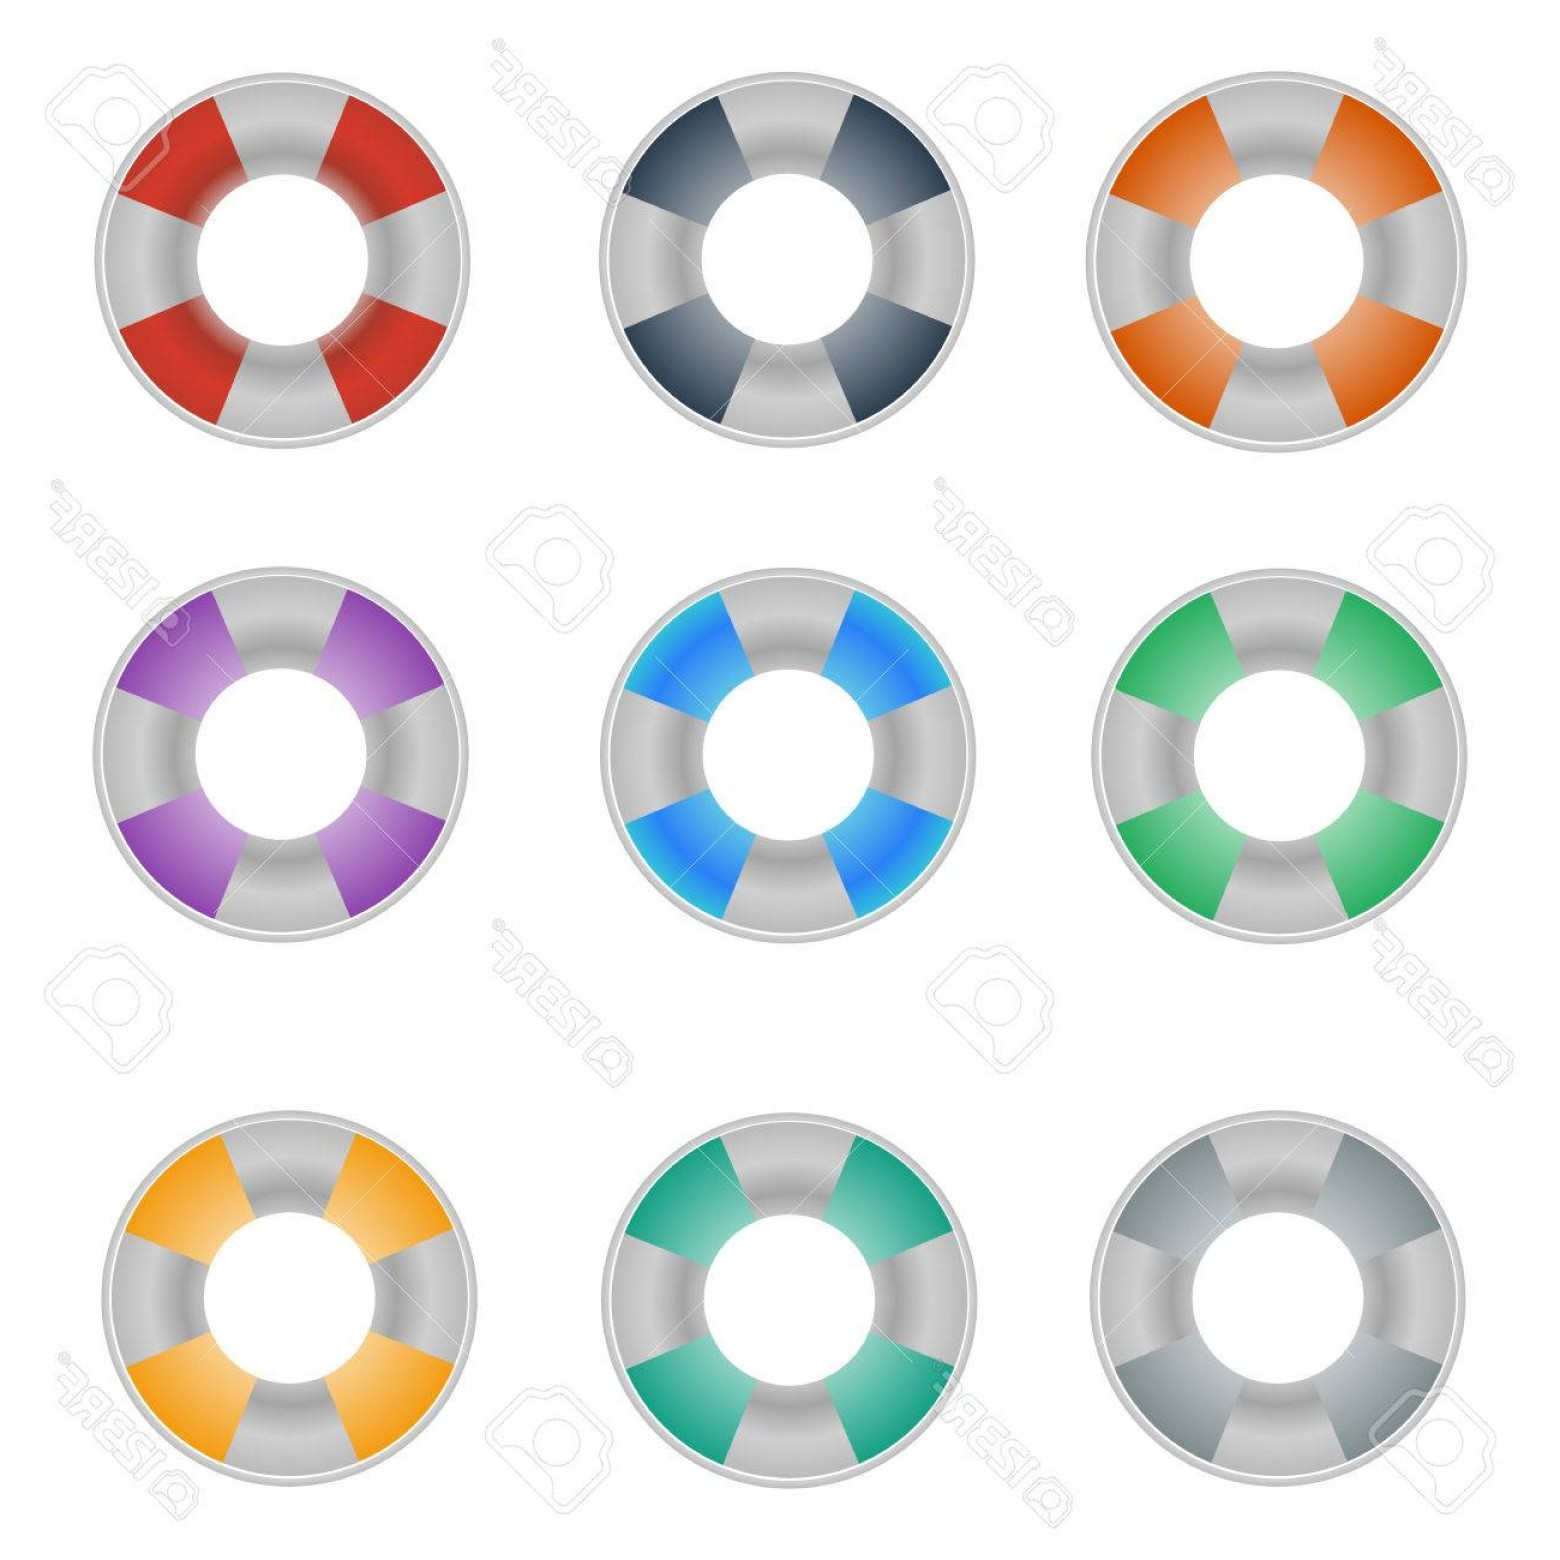 Old Lifesaver Stripe Vectors: Photostock Vector Set Of Colorful Lifebuoy Icons On The White Background Vector Design